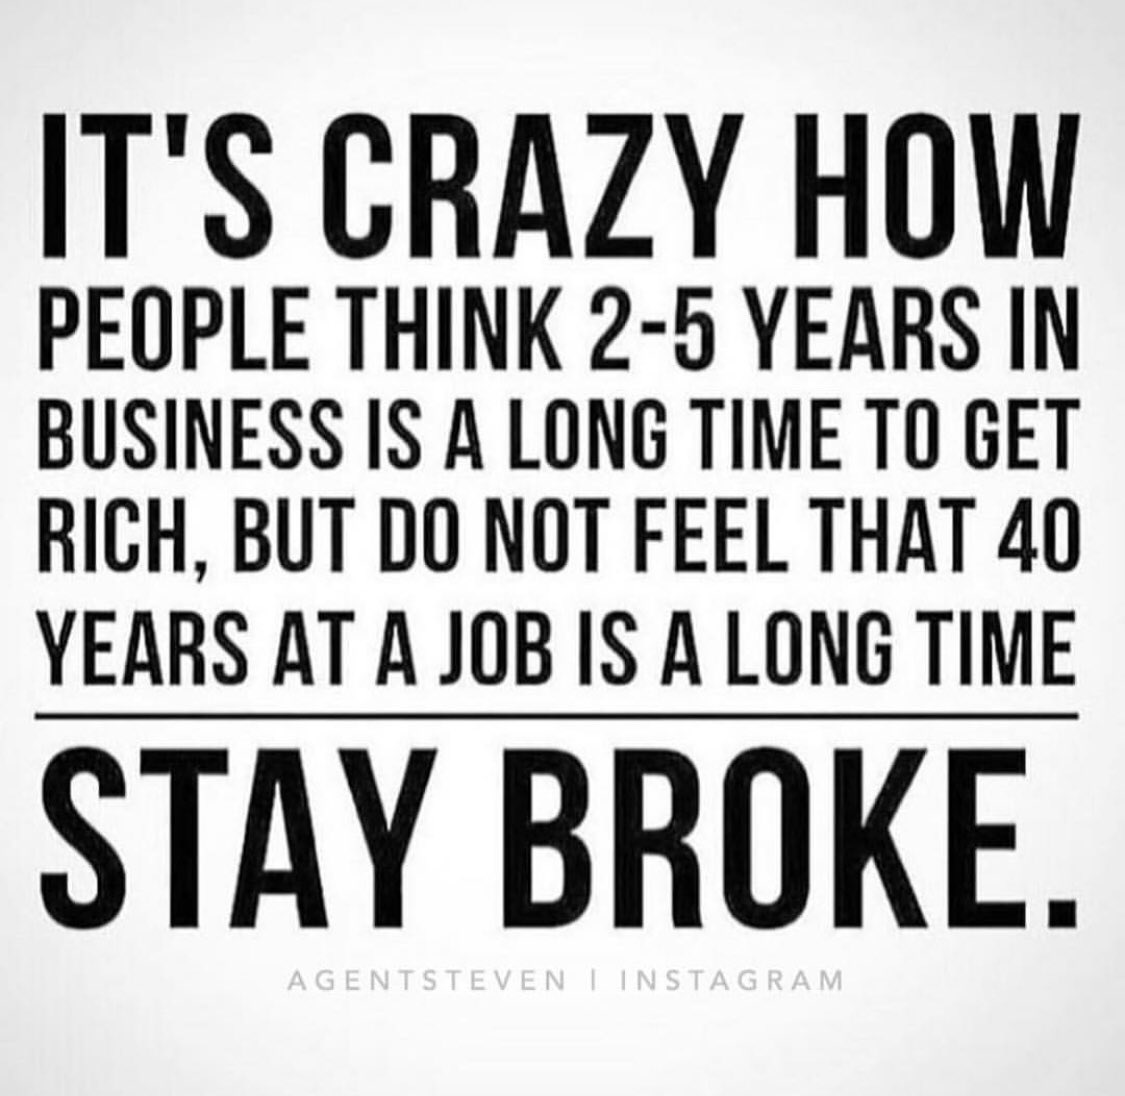 Keep grindin'. Find out what works and what doesn't. Be open 2 mistakes. Course correct. Meet ur professional/personal goals. 1 step at a time. It won't happen all at once. You got it.  #motivation #advice #staythecourse #smallbusiness #entrepreneur #determination #laserfocus